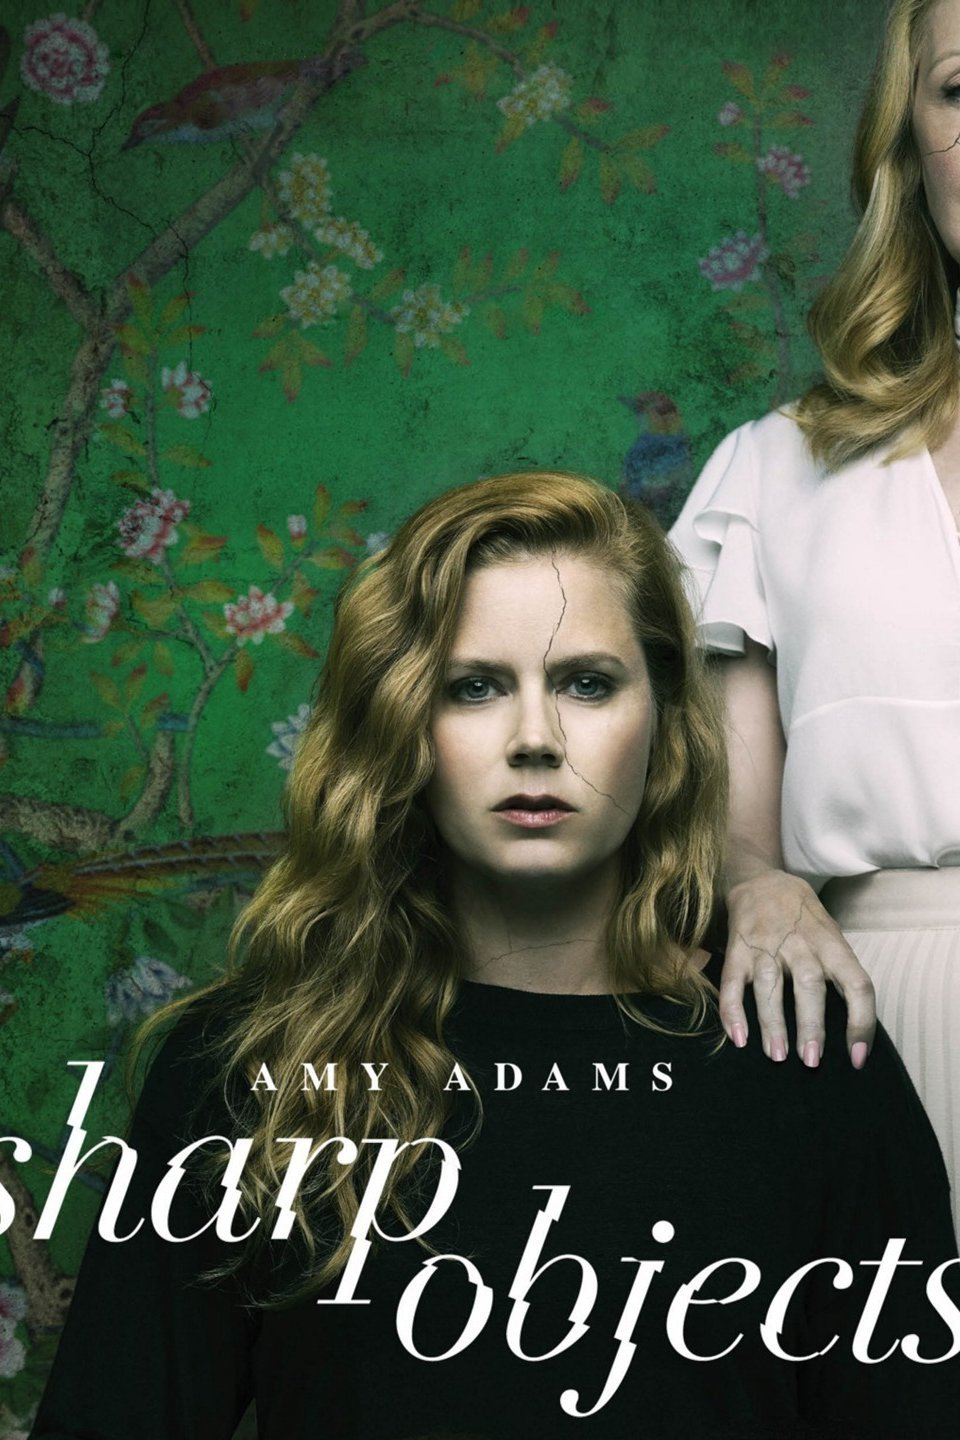 Sharp Objects Season 1 Download HDTV (Episode 7 Added)